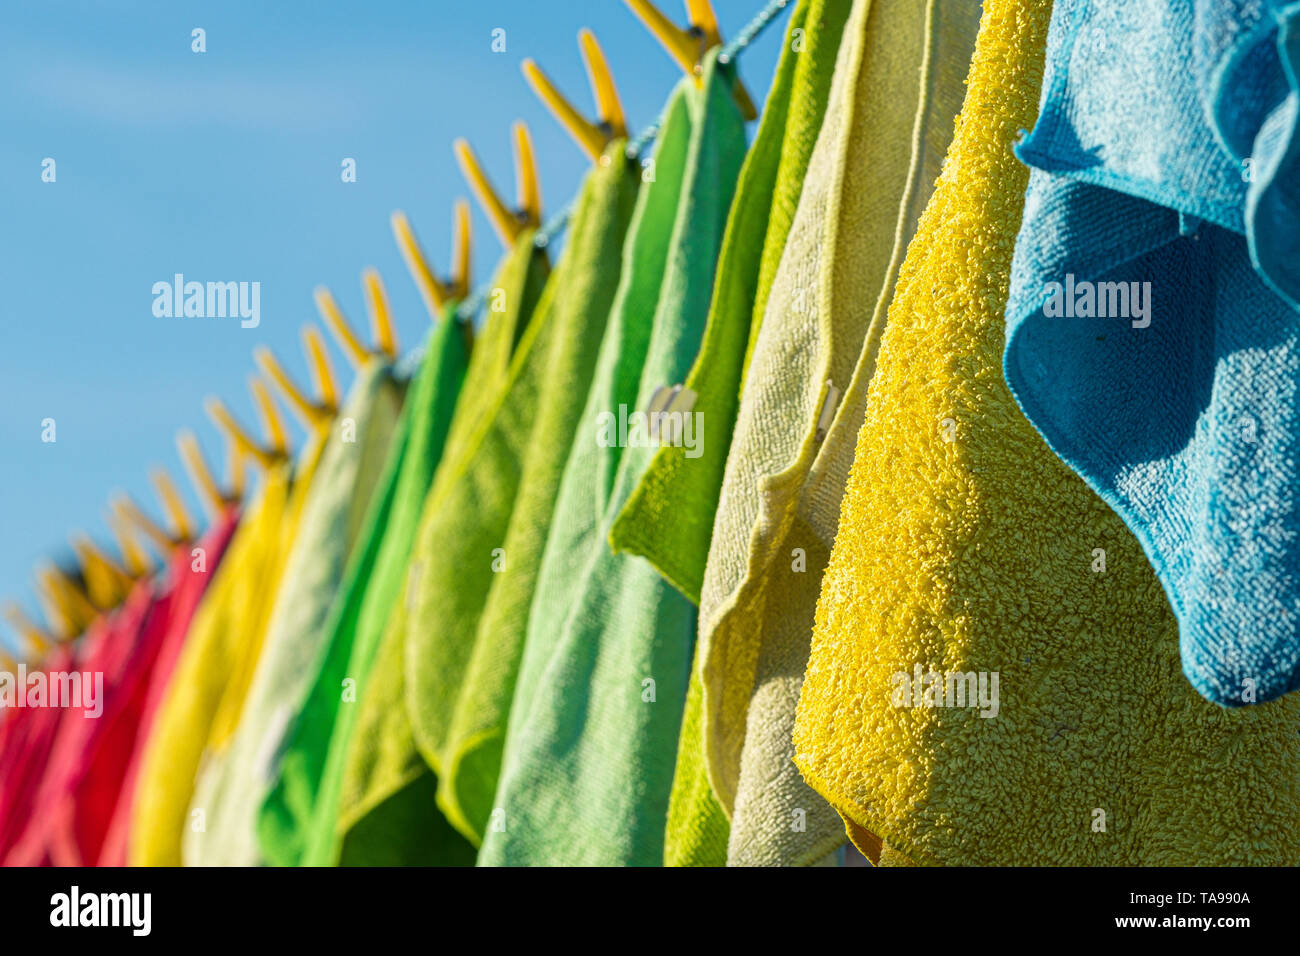 Microfibre cleaning cloths on a washing line. - Stock Image